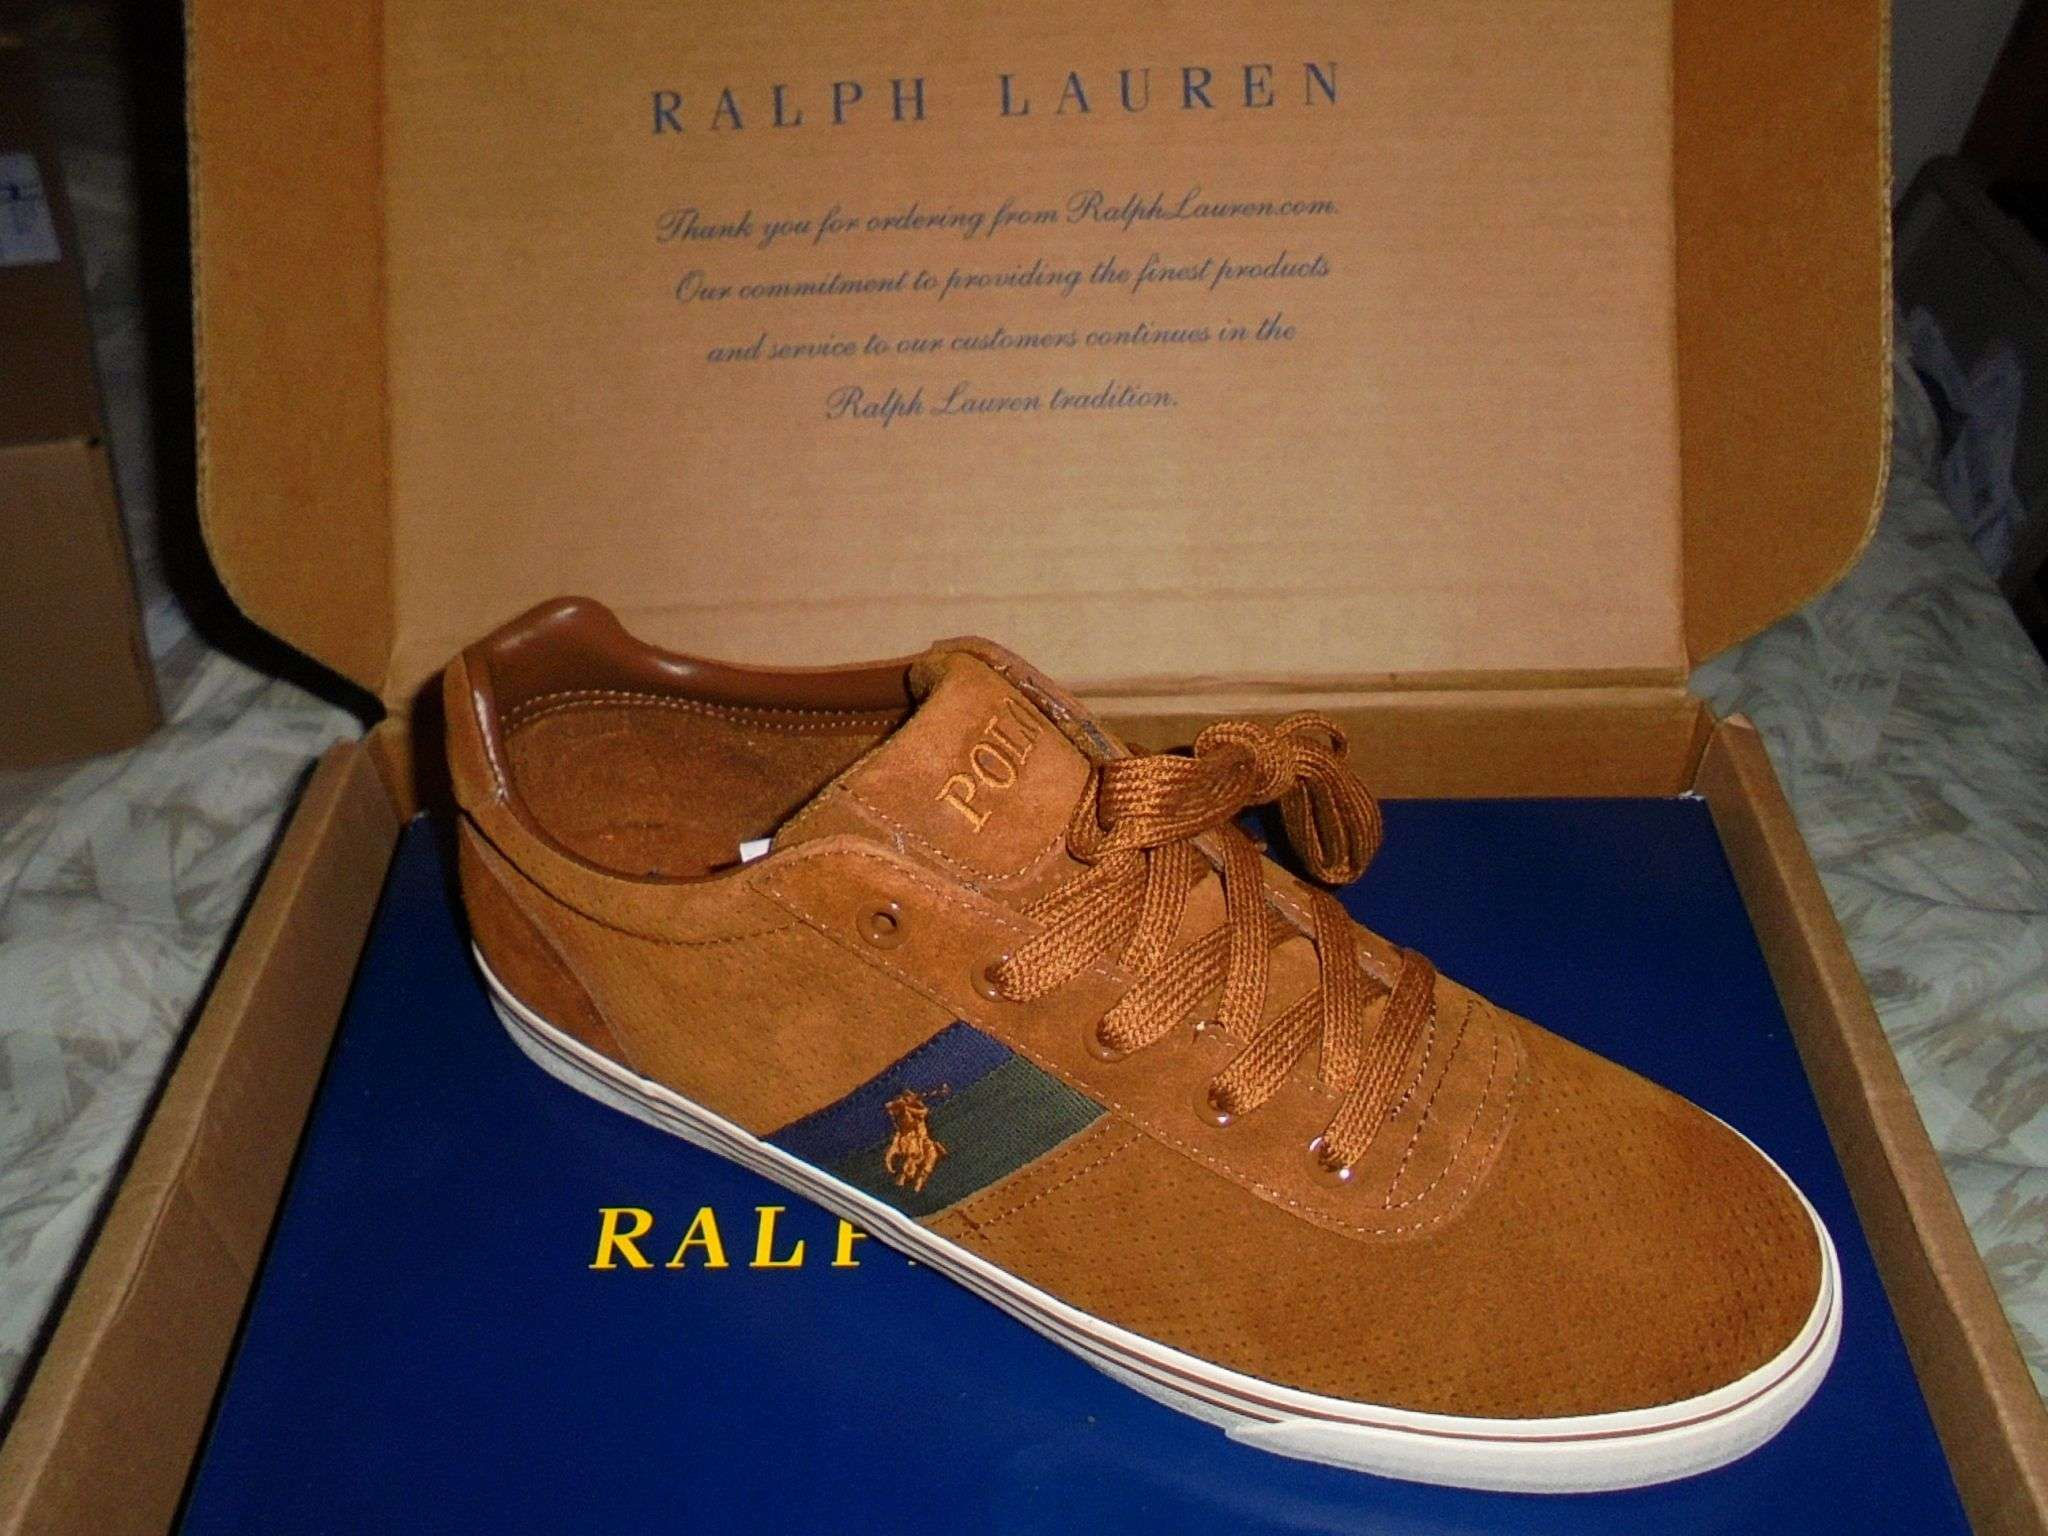 #Polo #hanford #shoe by #RalphLauren - www.drewrynewsnetwork.com/forum/reviews